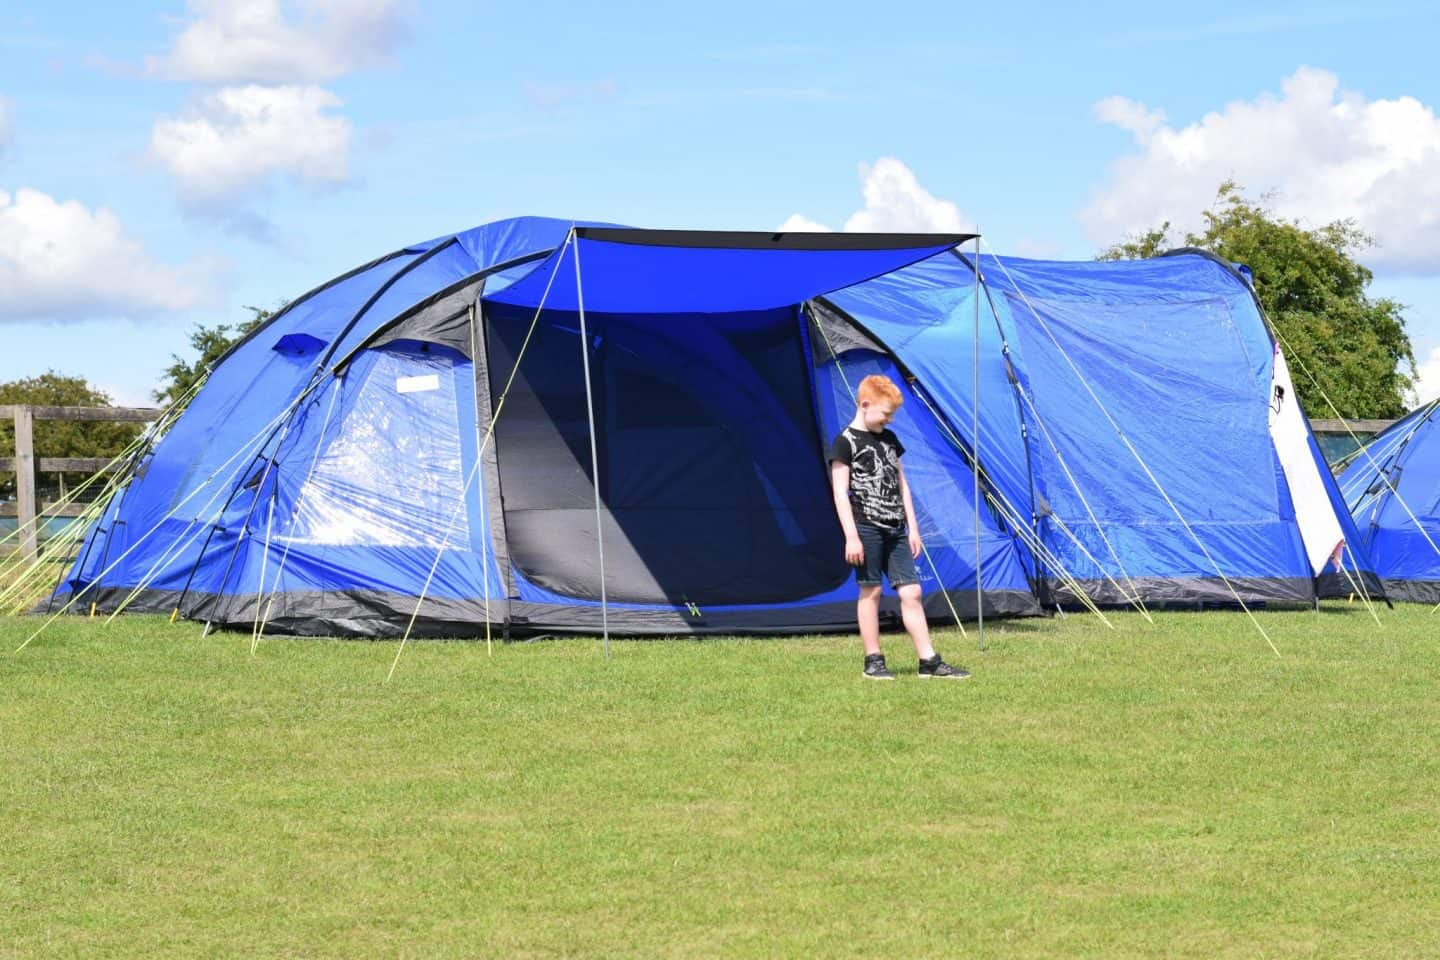 Large blue tent in the sunshine -camping / UK staycation (Eurohike Bowfell)